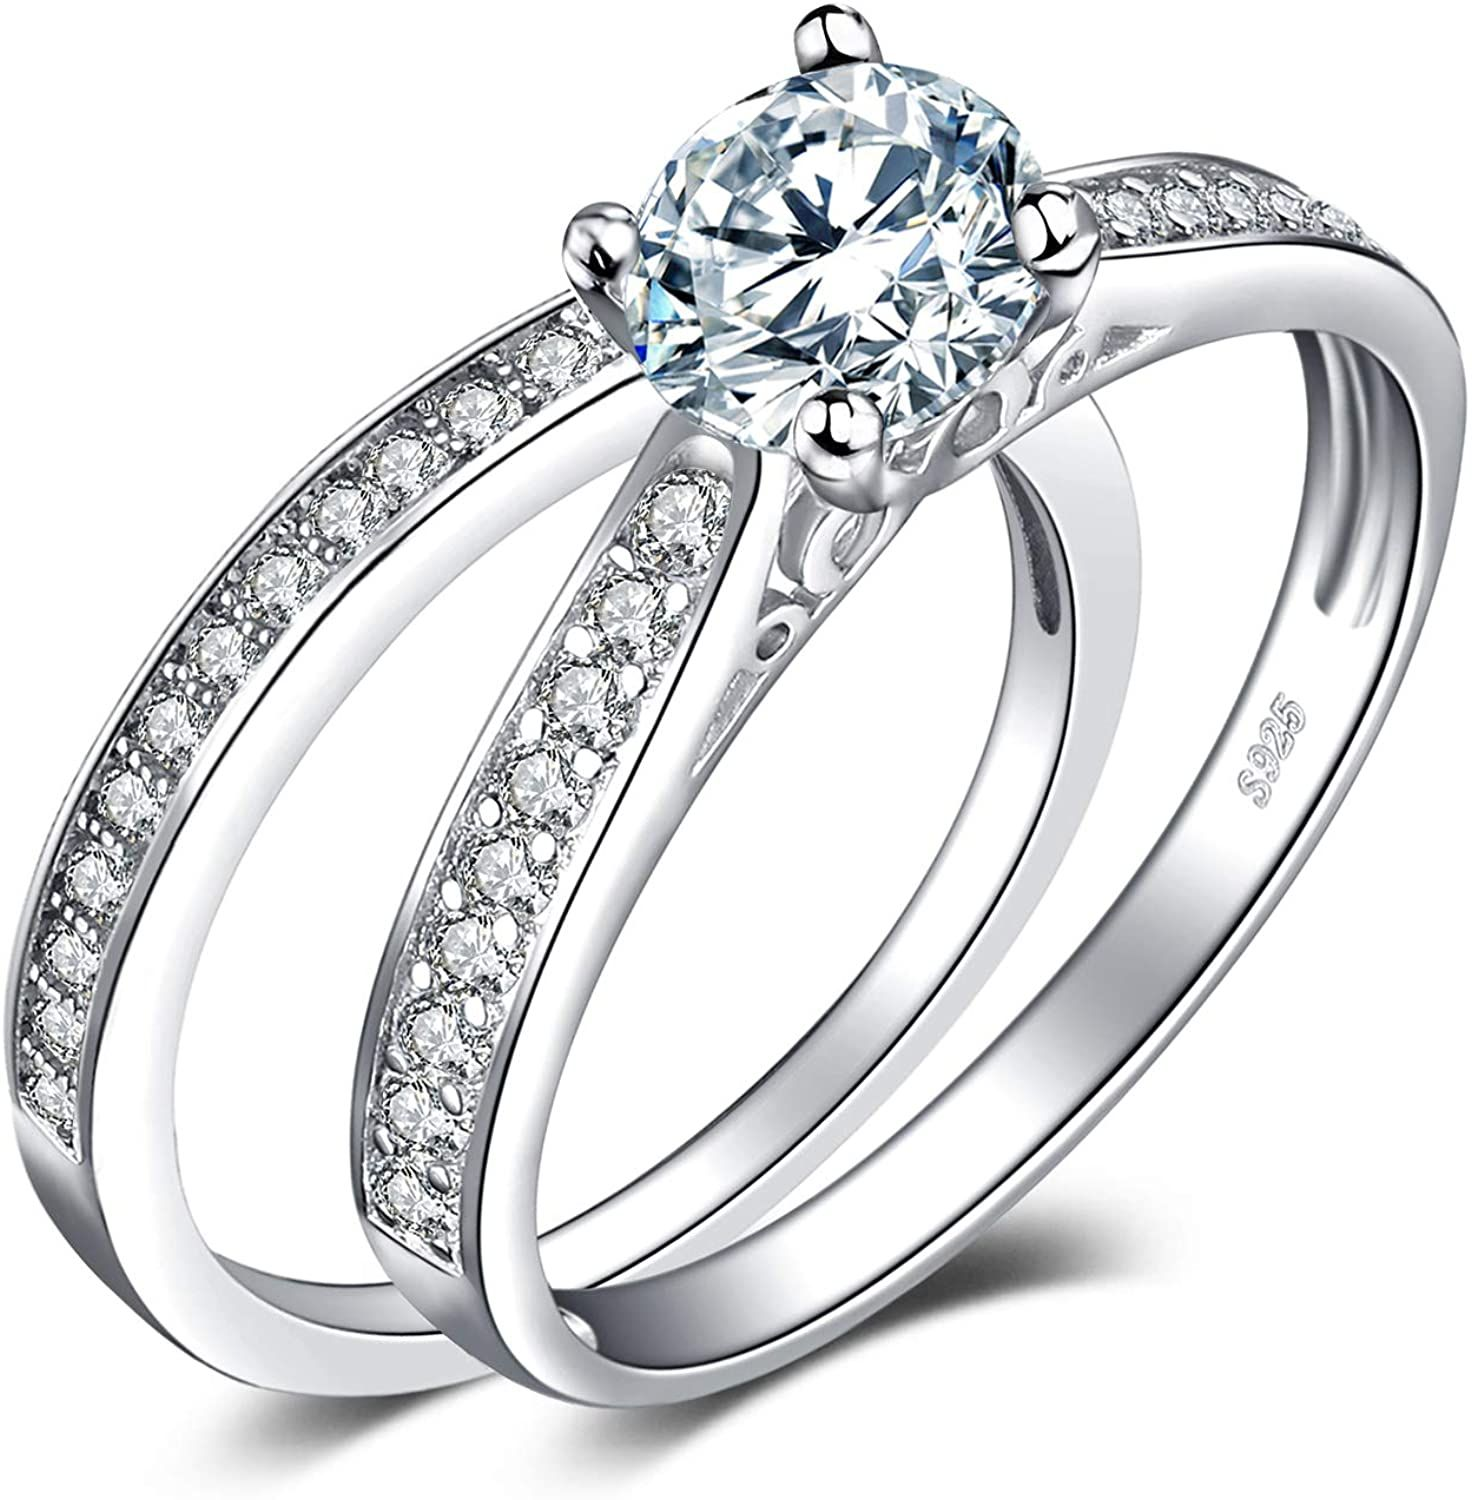 Diamond Wedding Band With Solitaire Engagement Ring In 2020 Round Diamond Engagement Rings Solitaire Engagement Ring Antique Wedding Rings